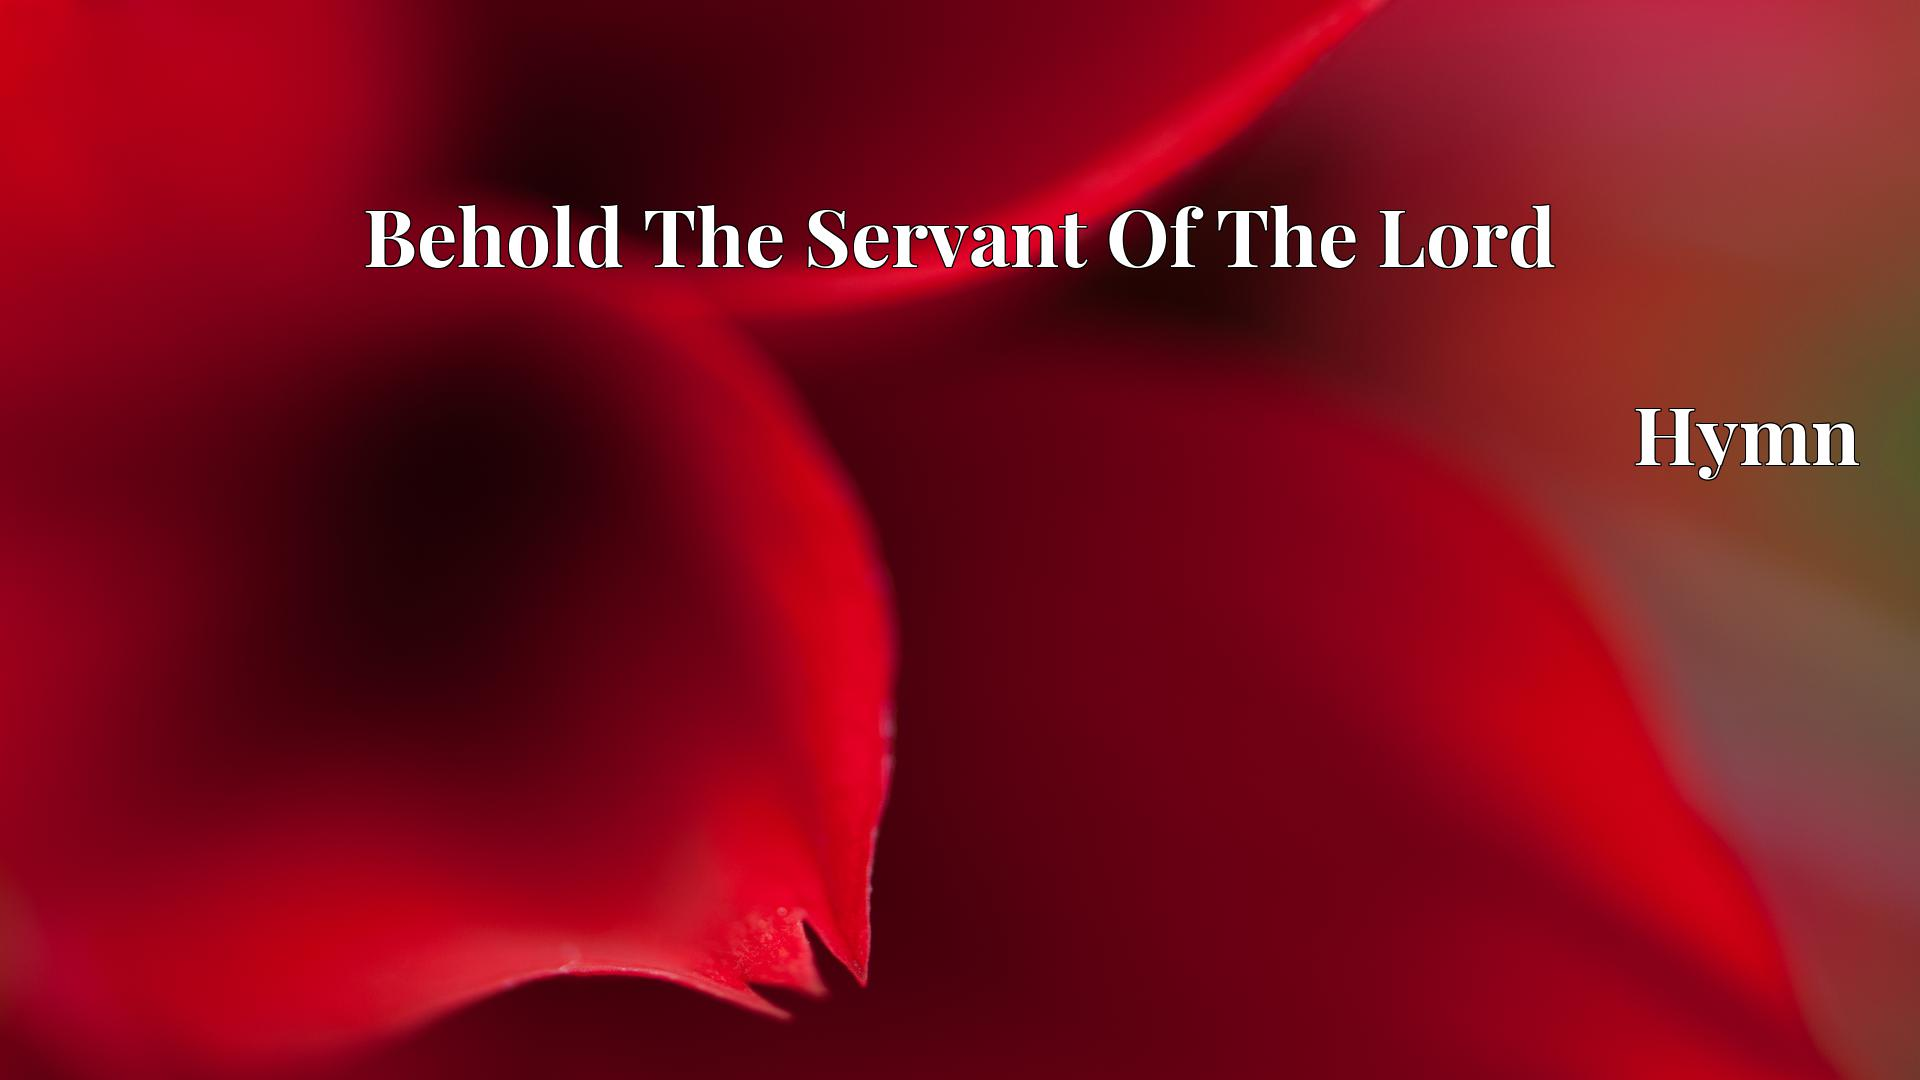 Behold The Servant Of The Lord Hymn